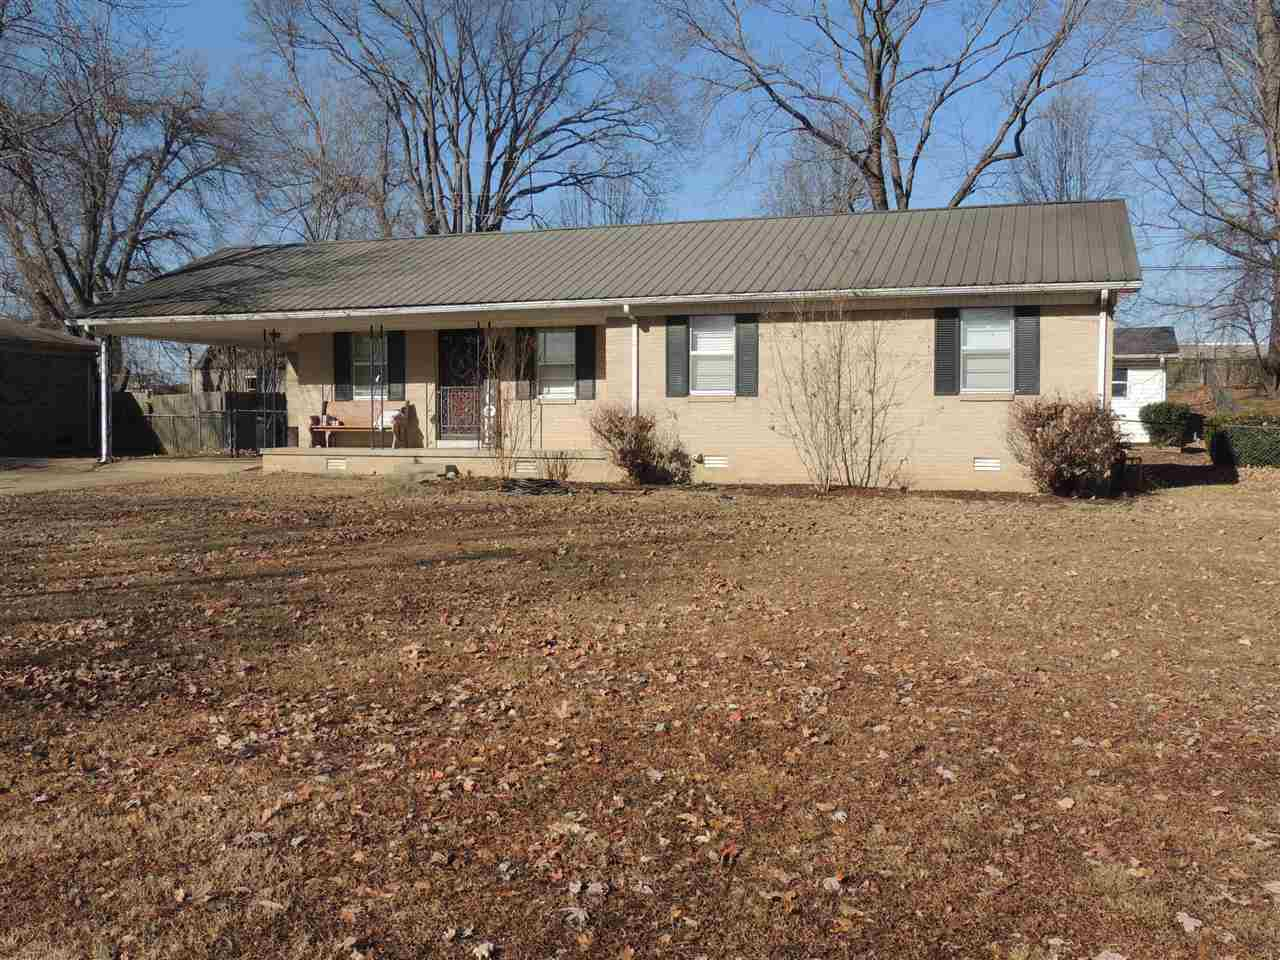 722 Jamestown Rd,Dyersburg,Tennessee 38024,3 Bedrooms Bedrooms,2 BathroomsBathrooms,Residential,722 Jamestown Rd,181080